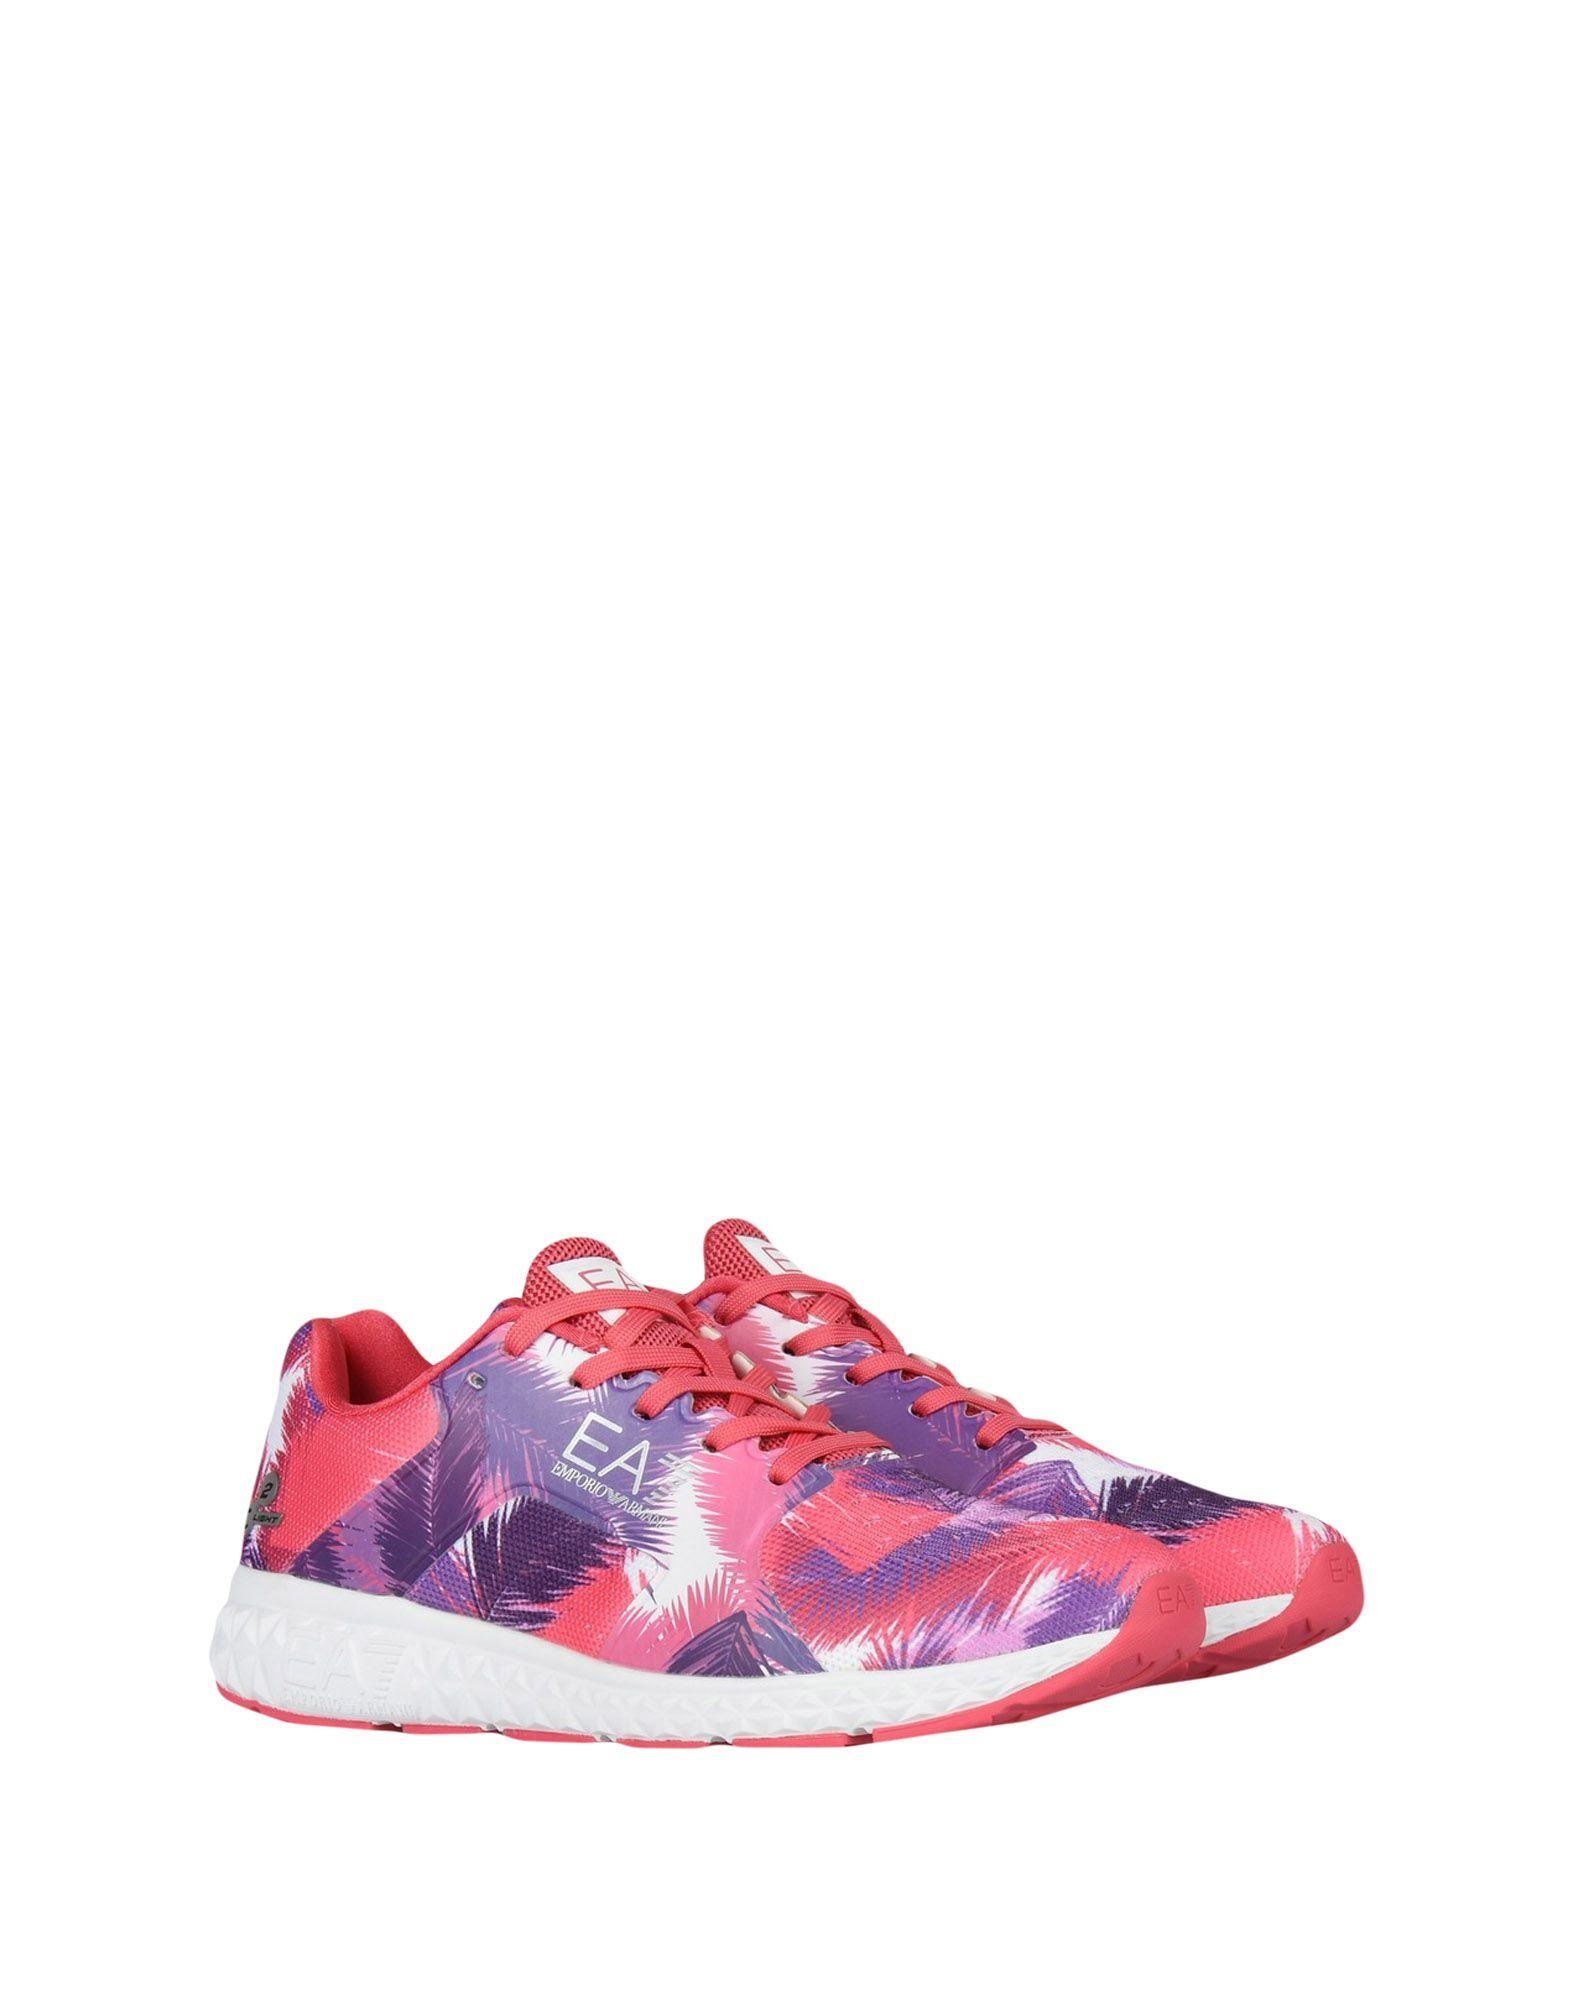 Ea7 Sneakers In Pink